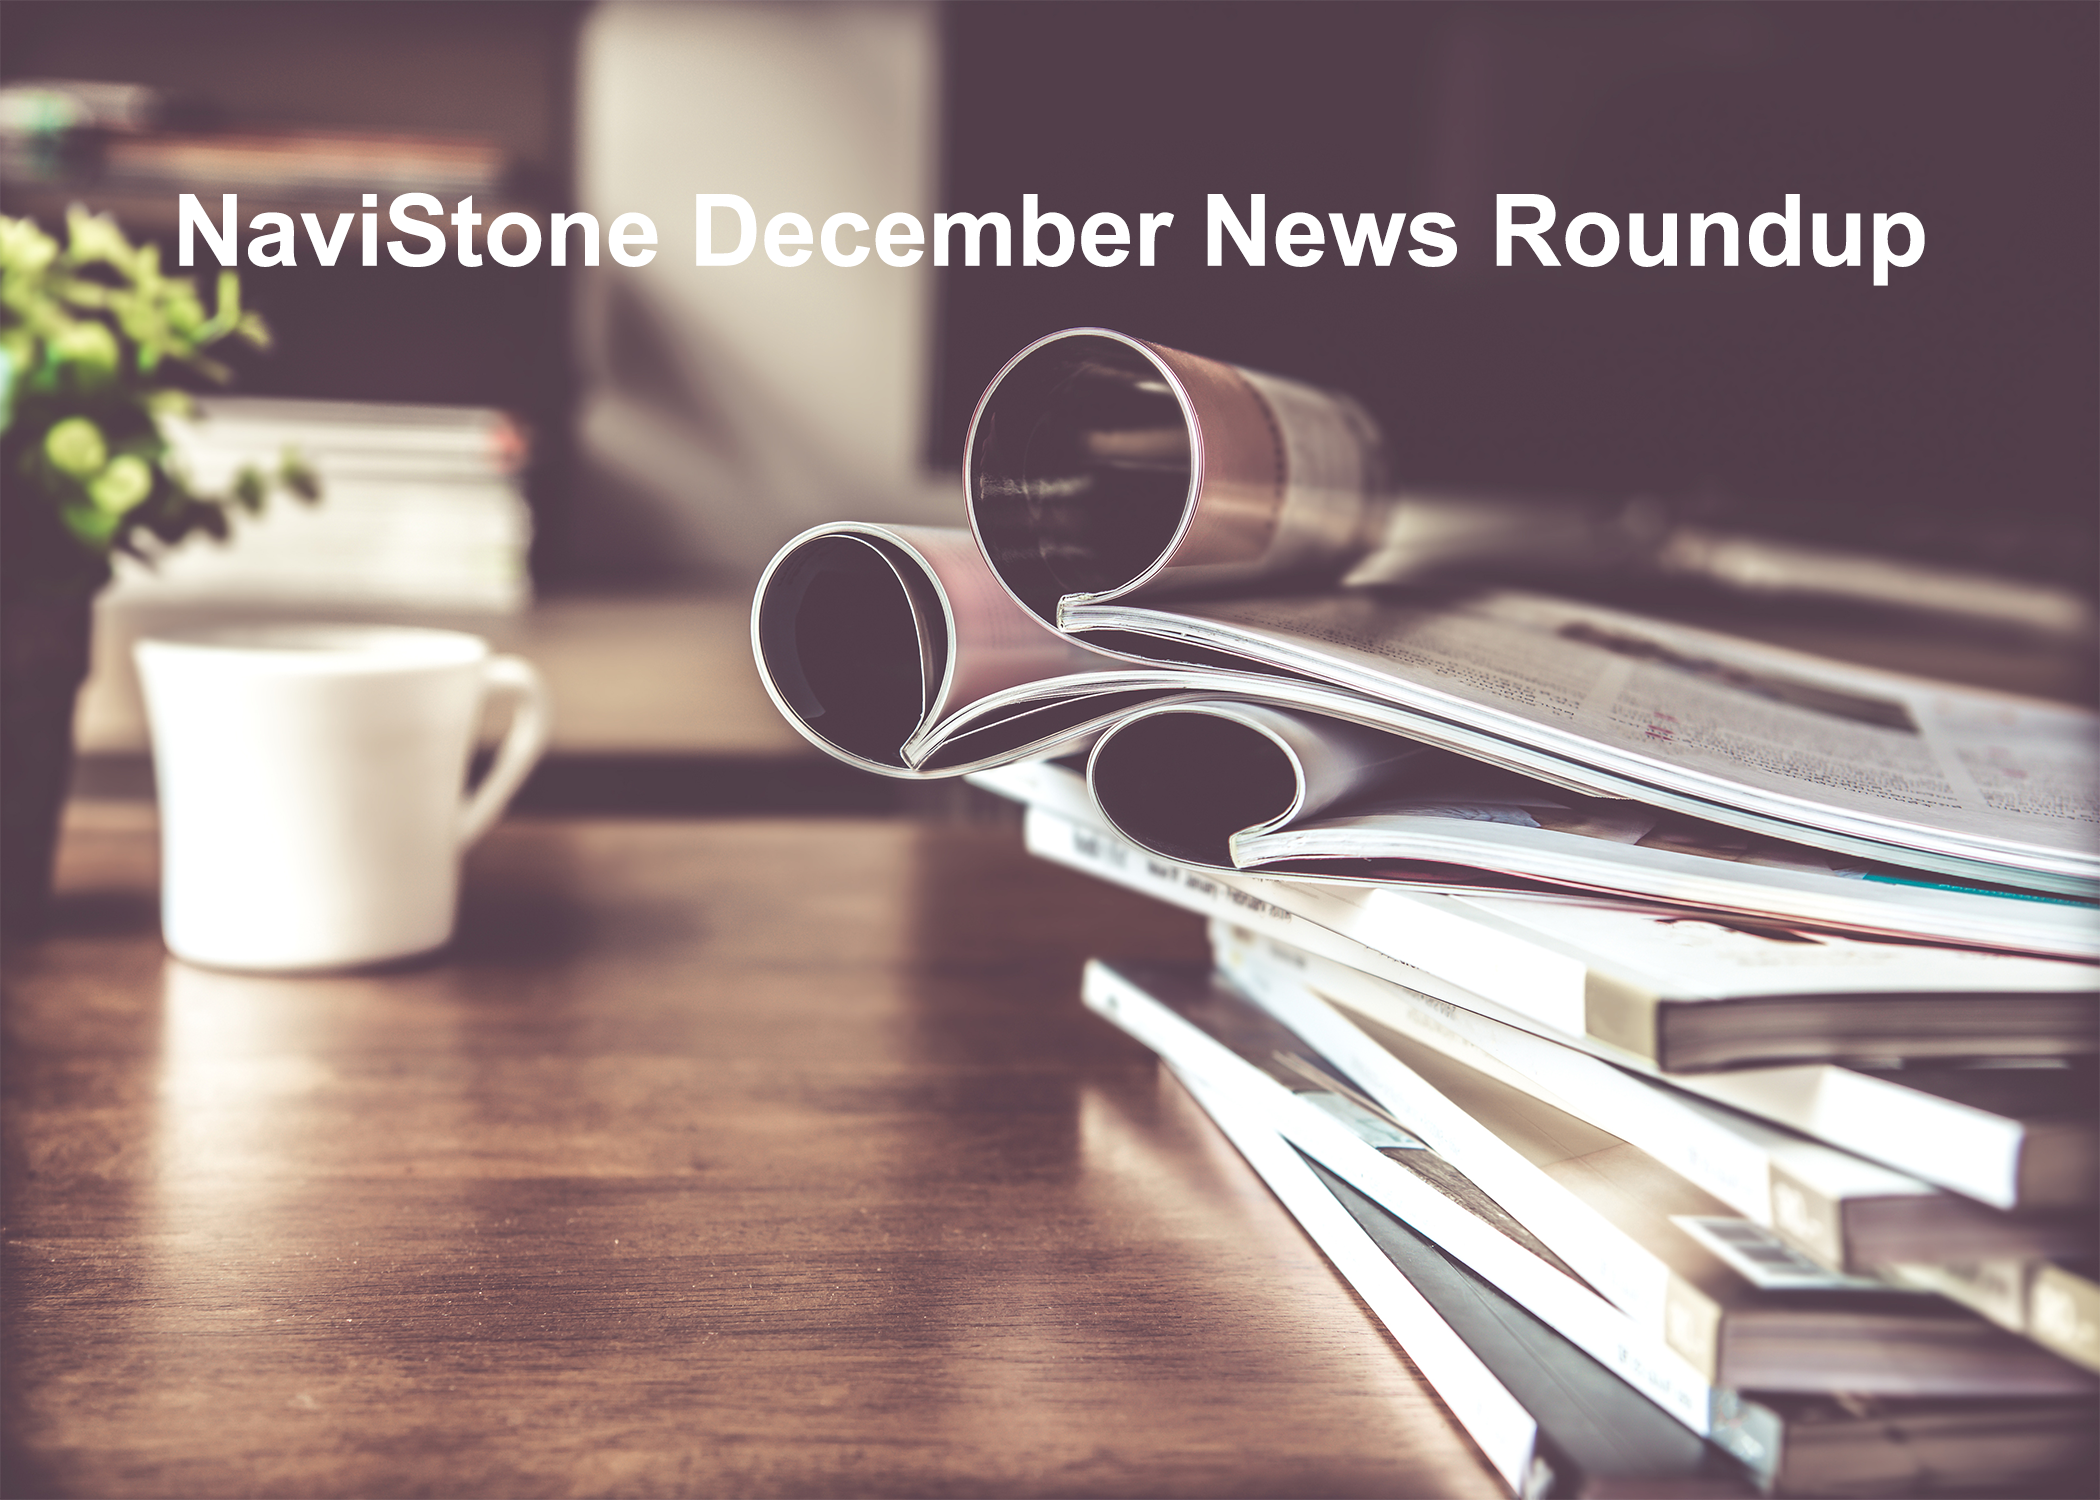 NaviStone January News Roundup